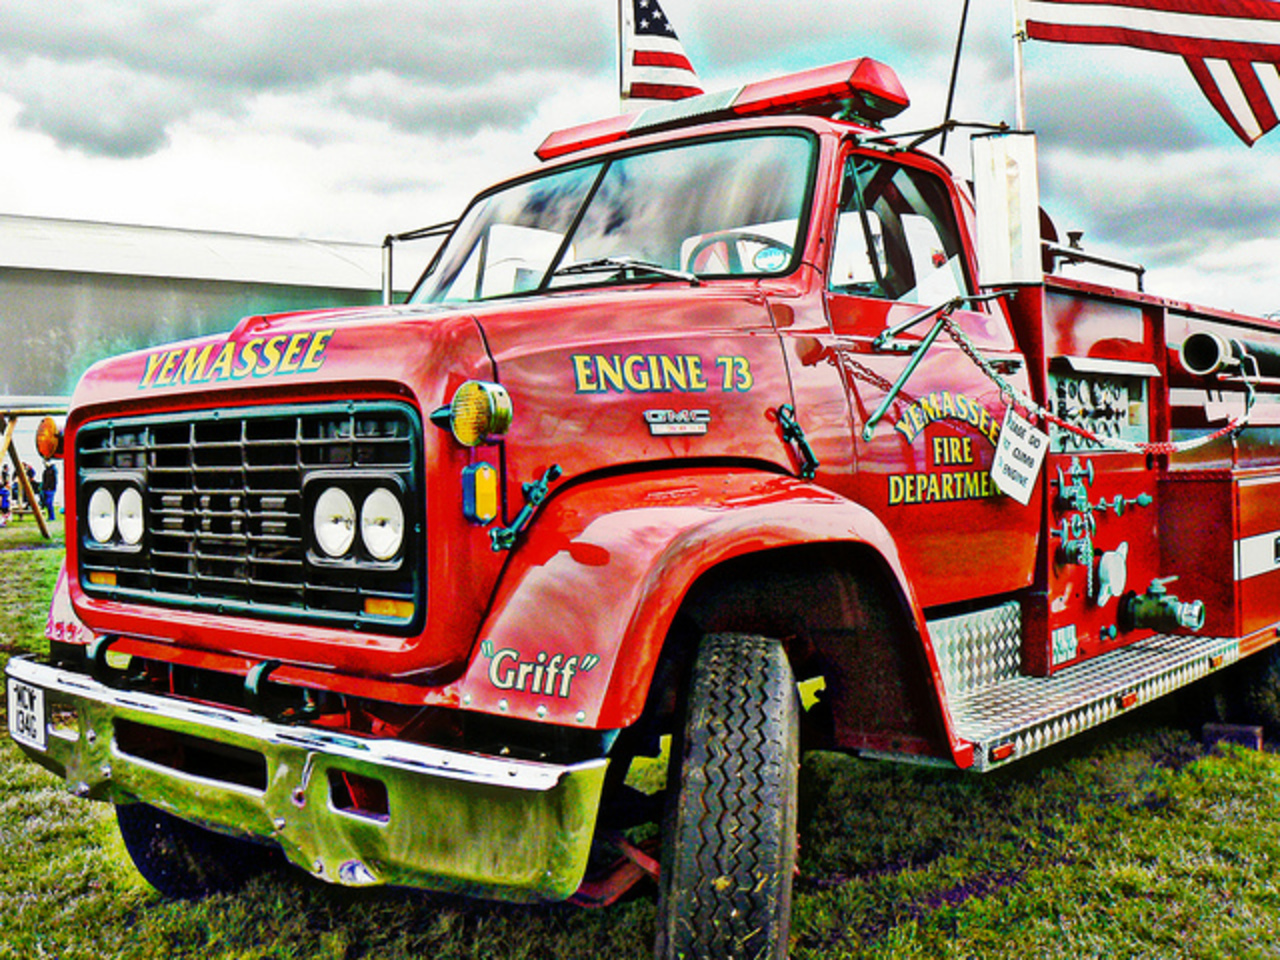 "GMC Fire Truck ""Griff"" Engine 73 Yemassee Fire Department 